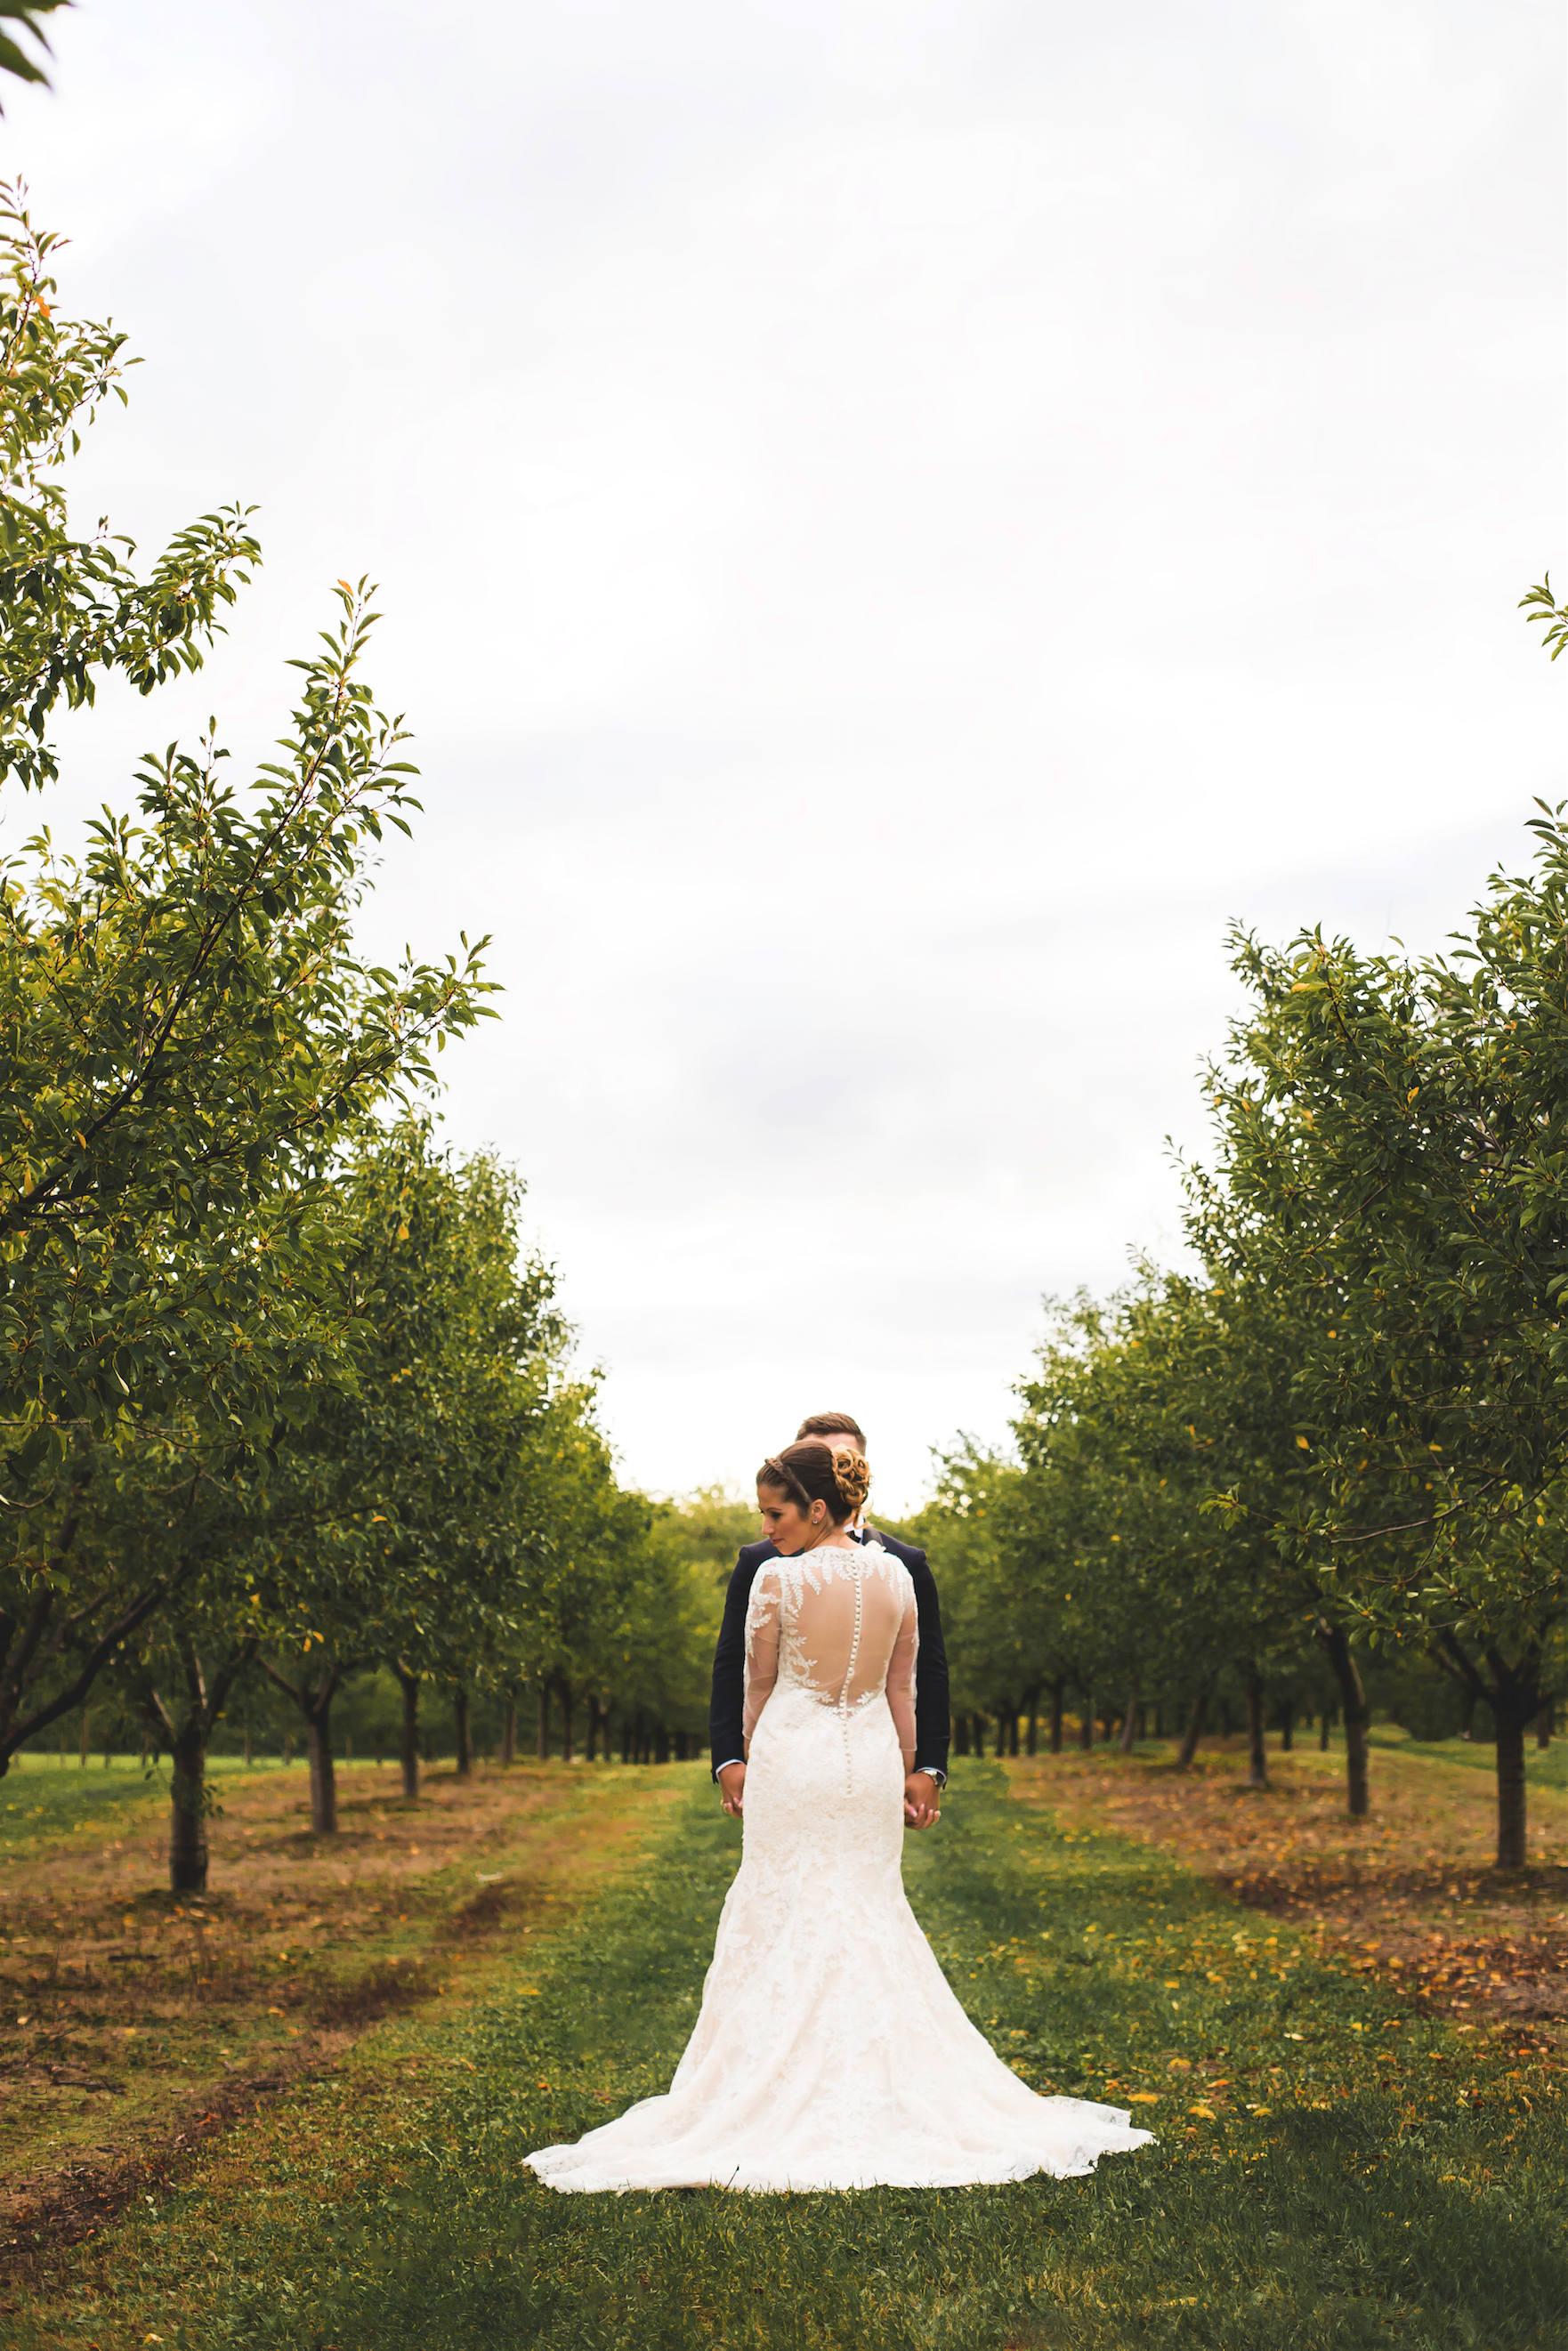 Wedding-Photos-Mount-Pleasant-Farm-Photographer-Wedding-Hamilton-GTA-Niagara-Oakville-Toronto-Moments-by-Lauren-Photography-Photo-Image-29.png